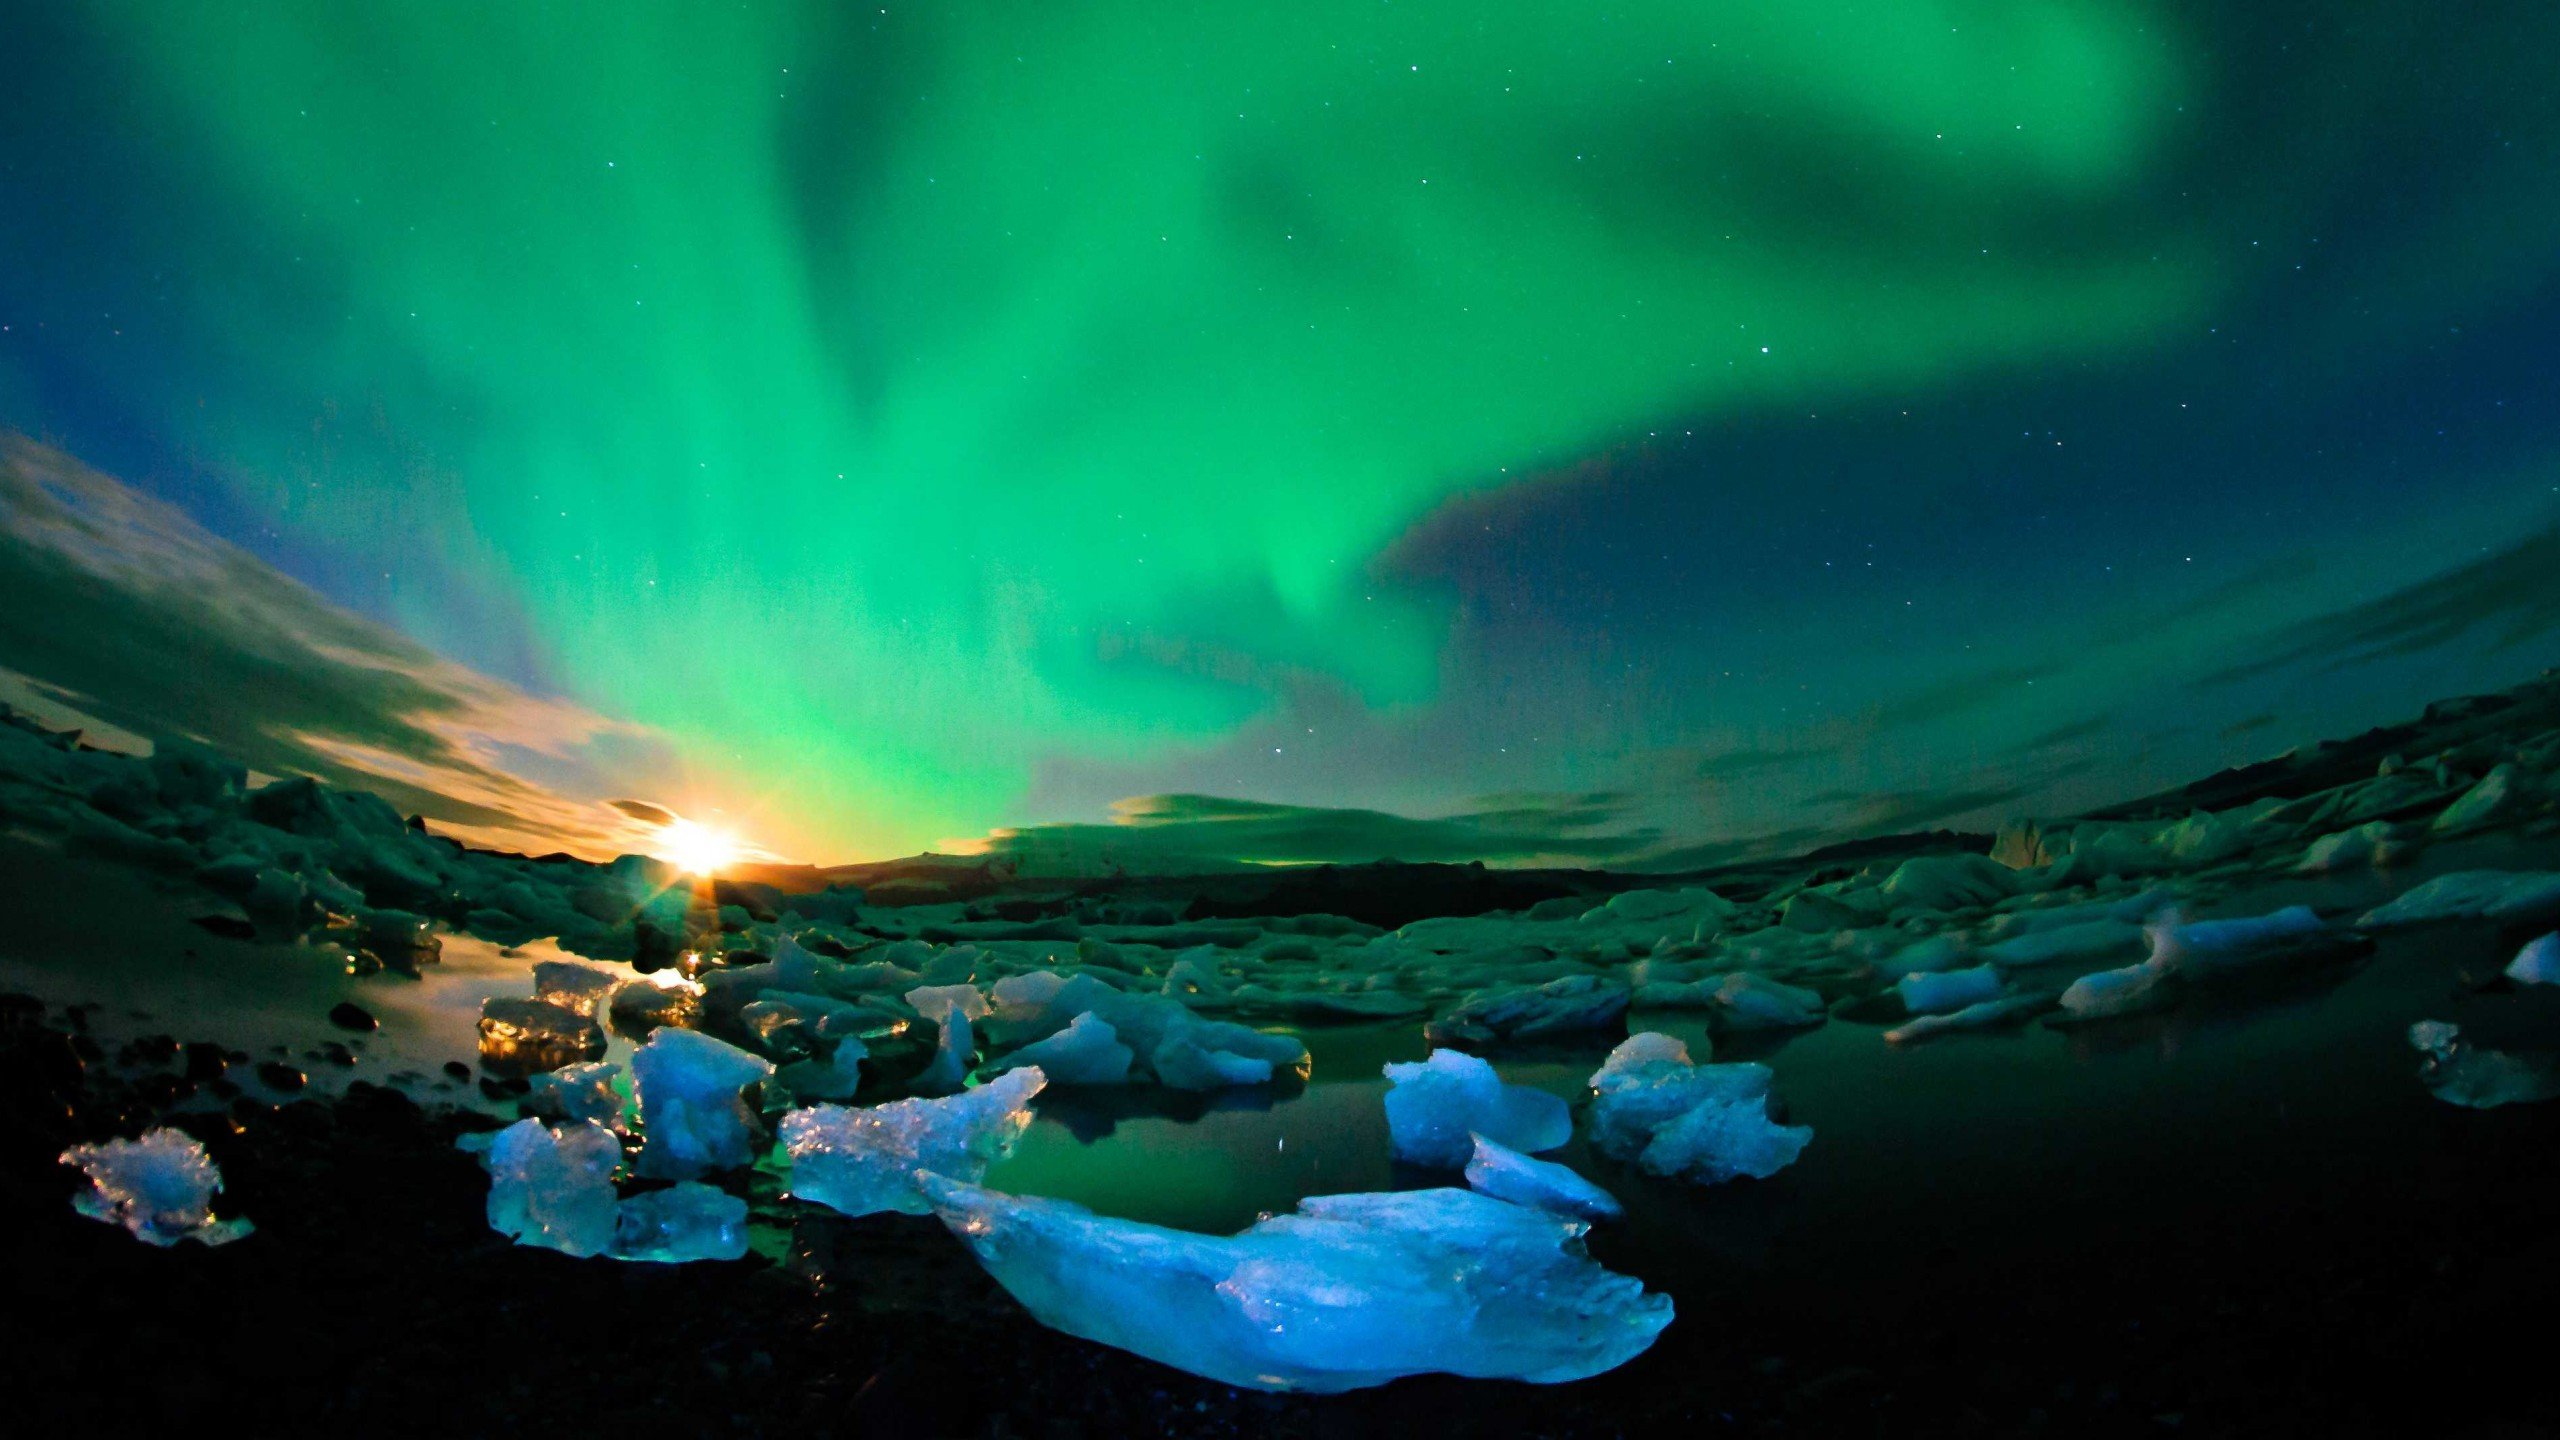 Wallpaper Iceland 4k Hd Wallpaper Northern Lights Sky Ice Nature 5196 Page 3